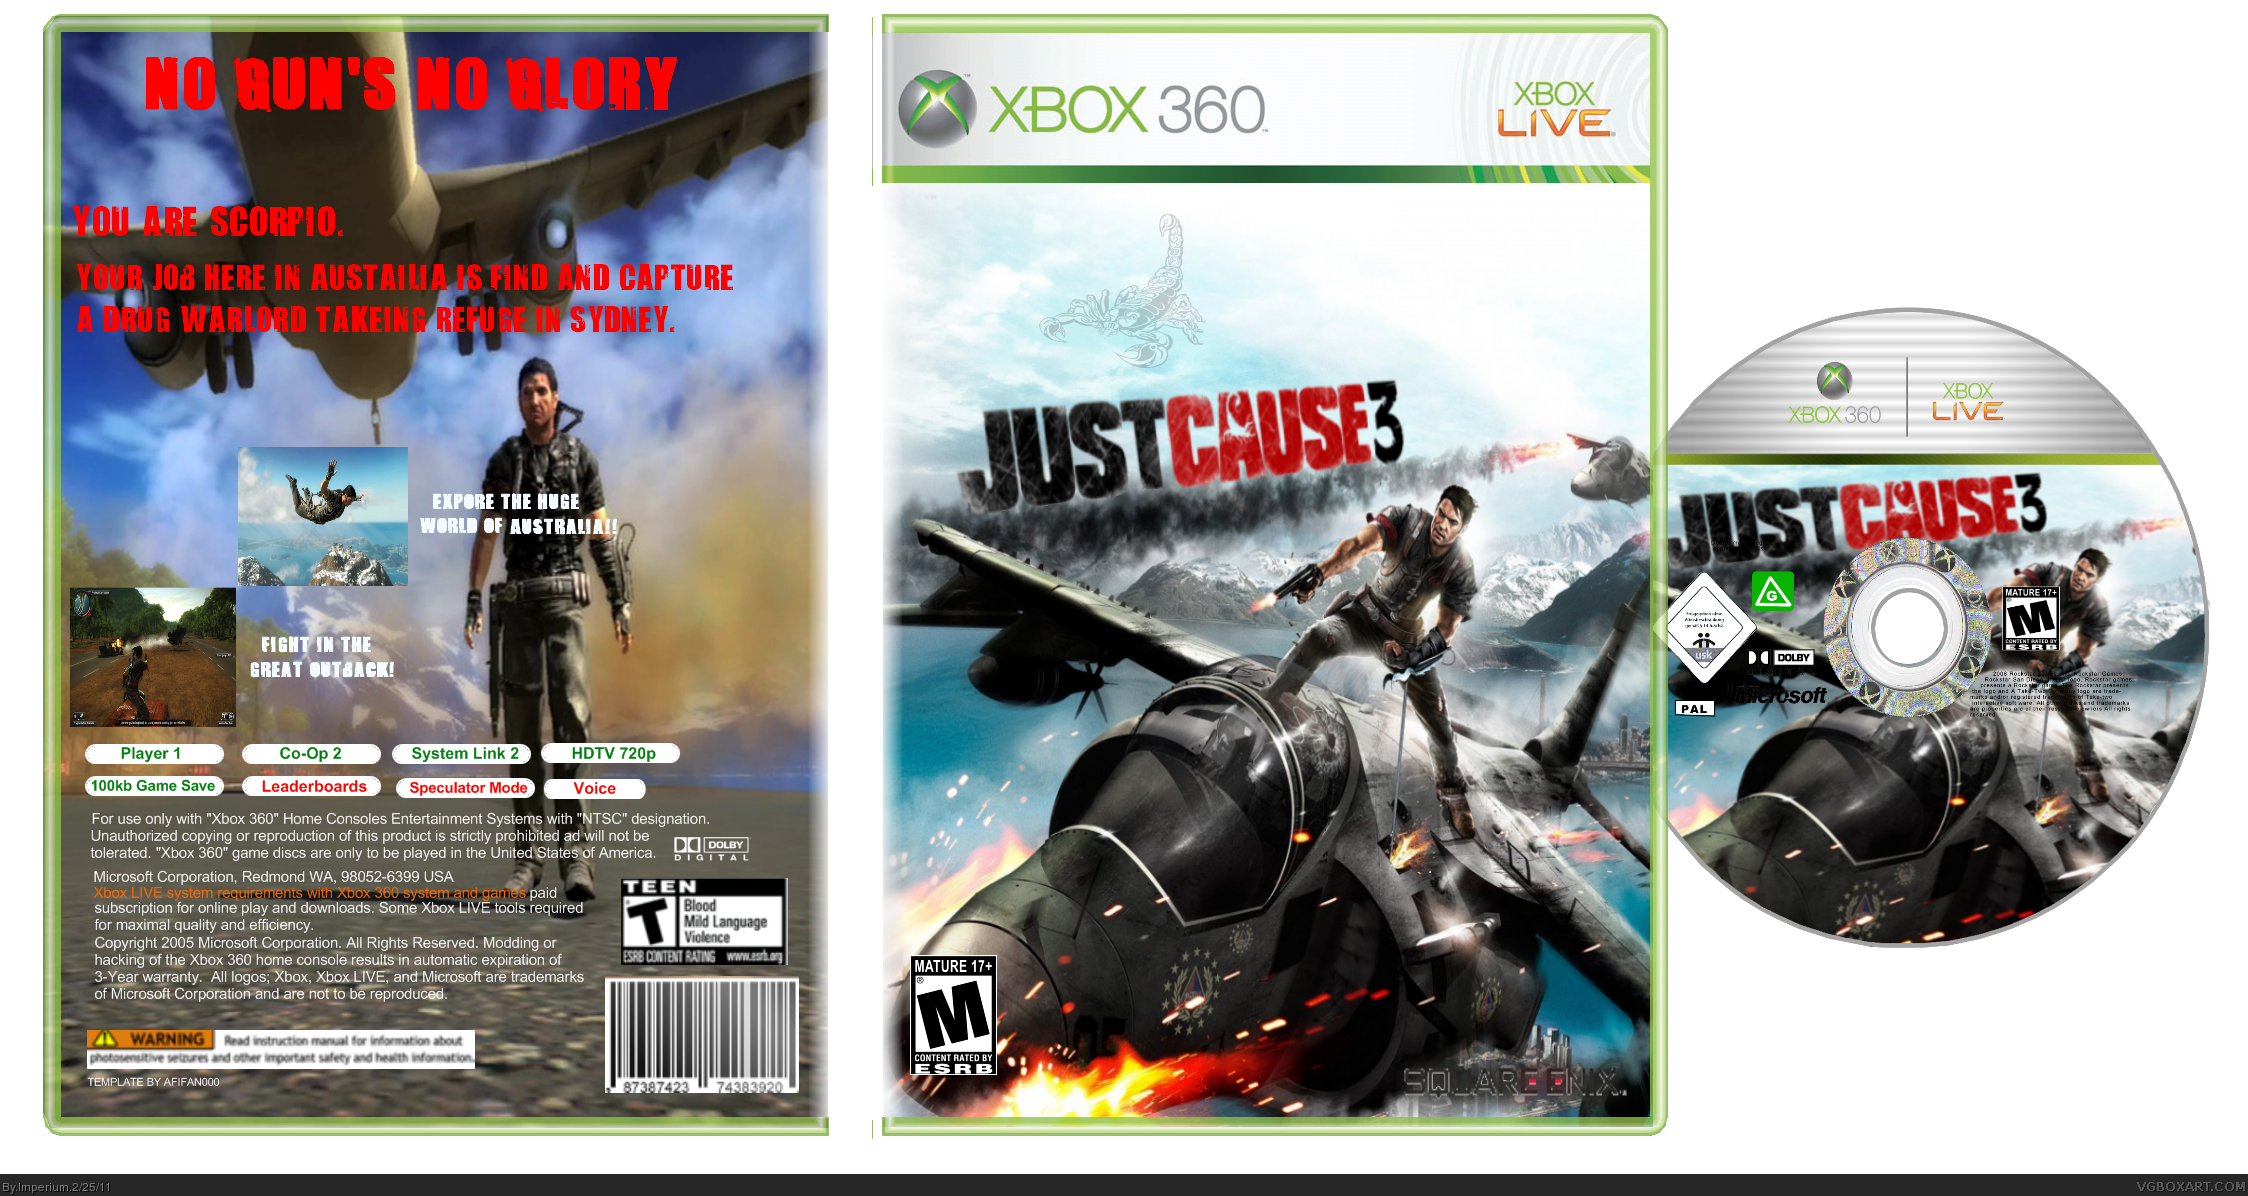 Just cause 3 box cover